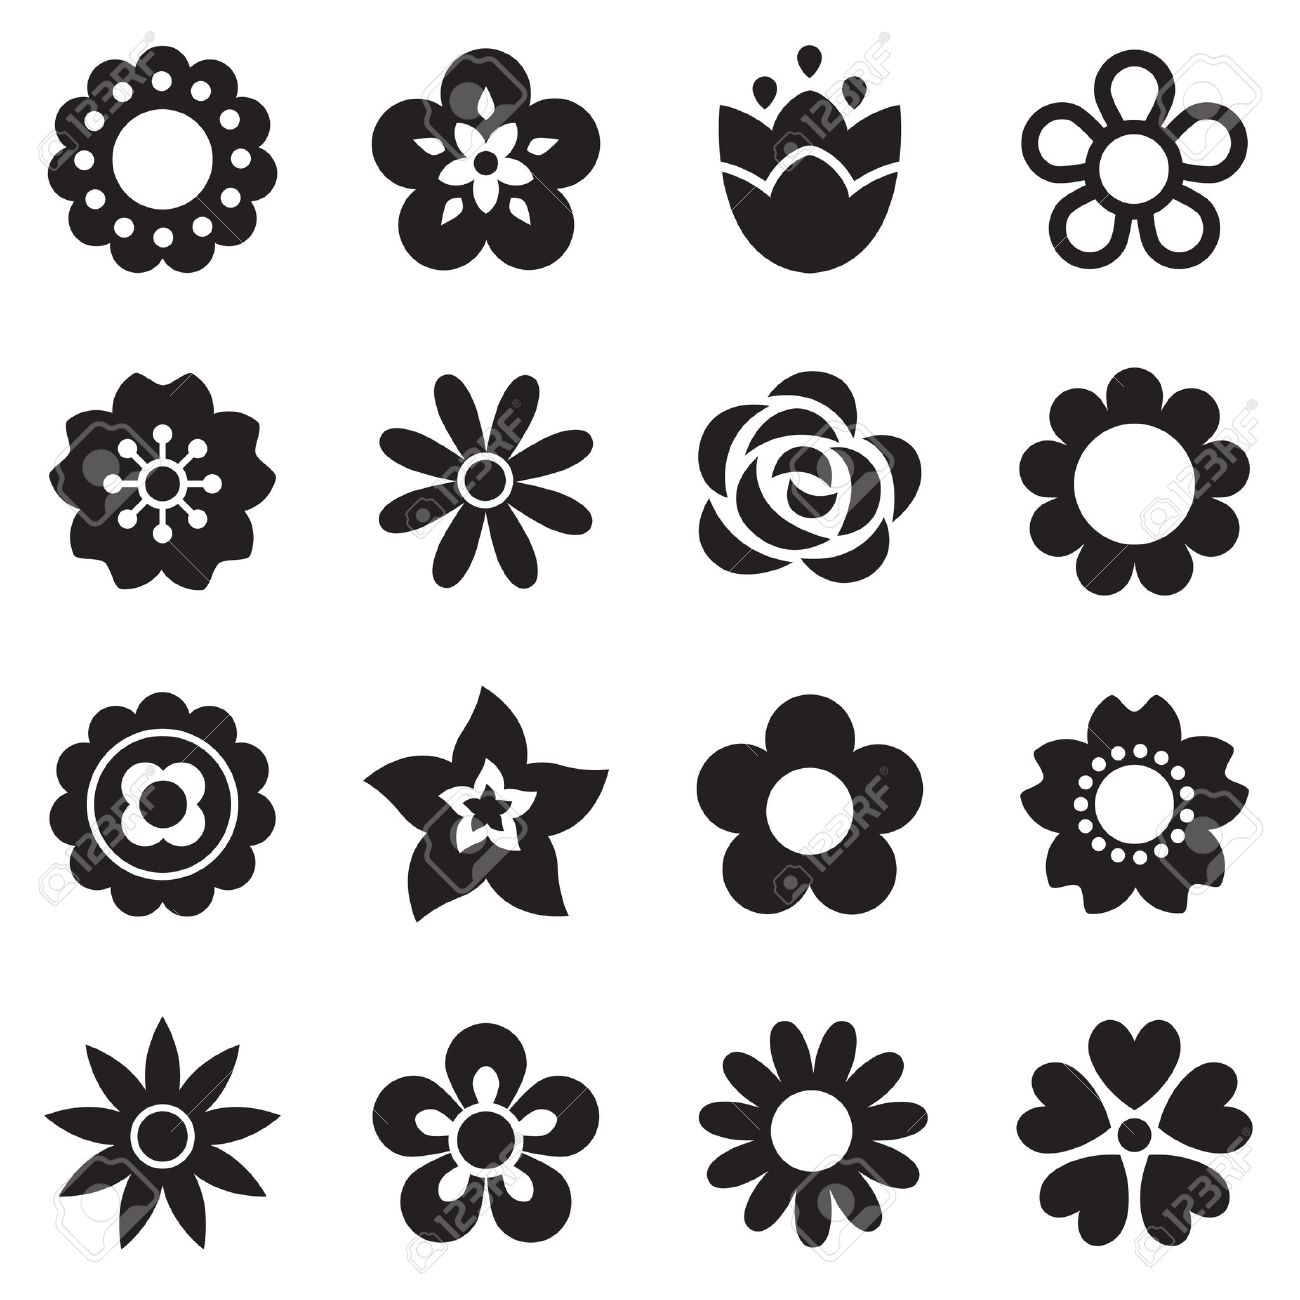 Set Of Flat Flower Icons In Silhouette Isolated On White Simple Royalty Free Cliparts Vectors And Stock Illustration Image 31359794